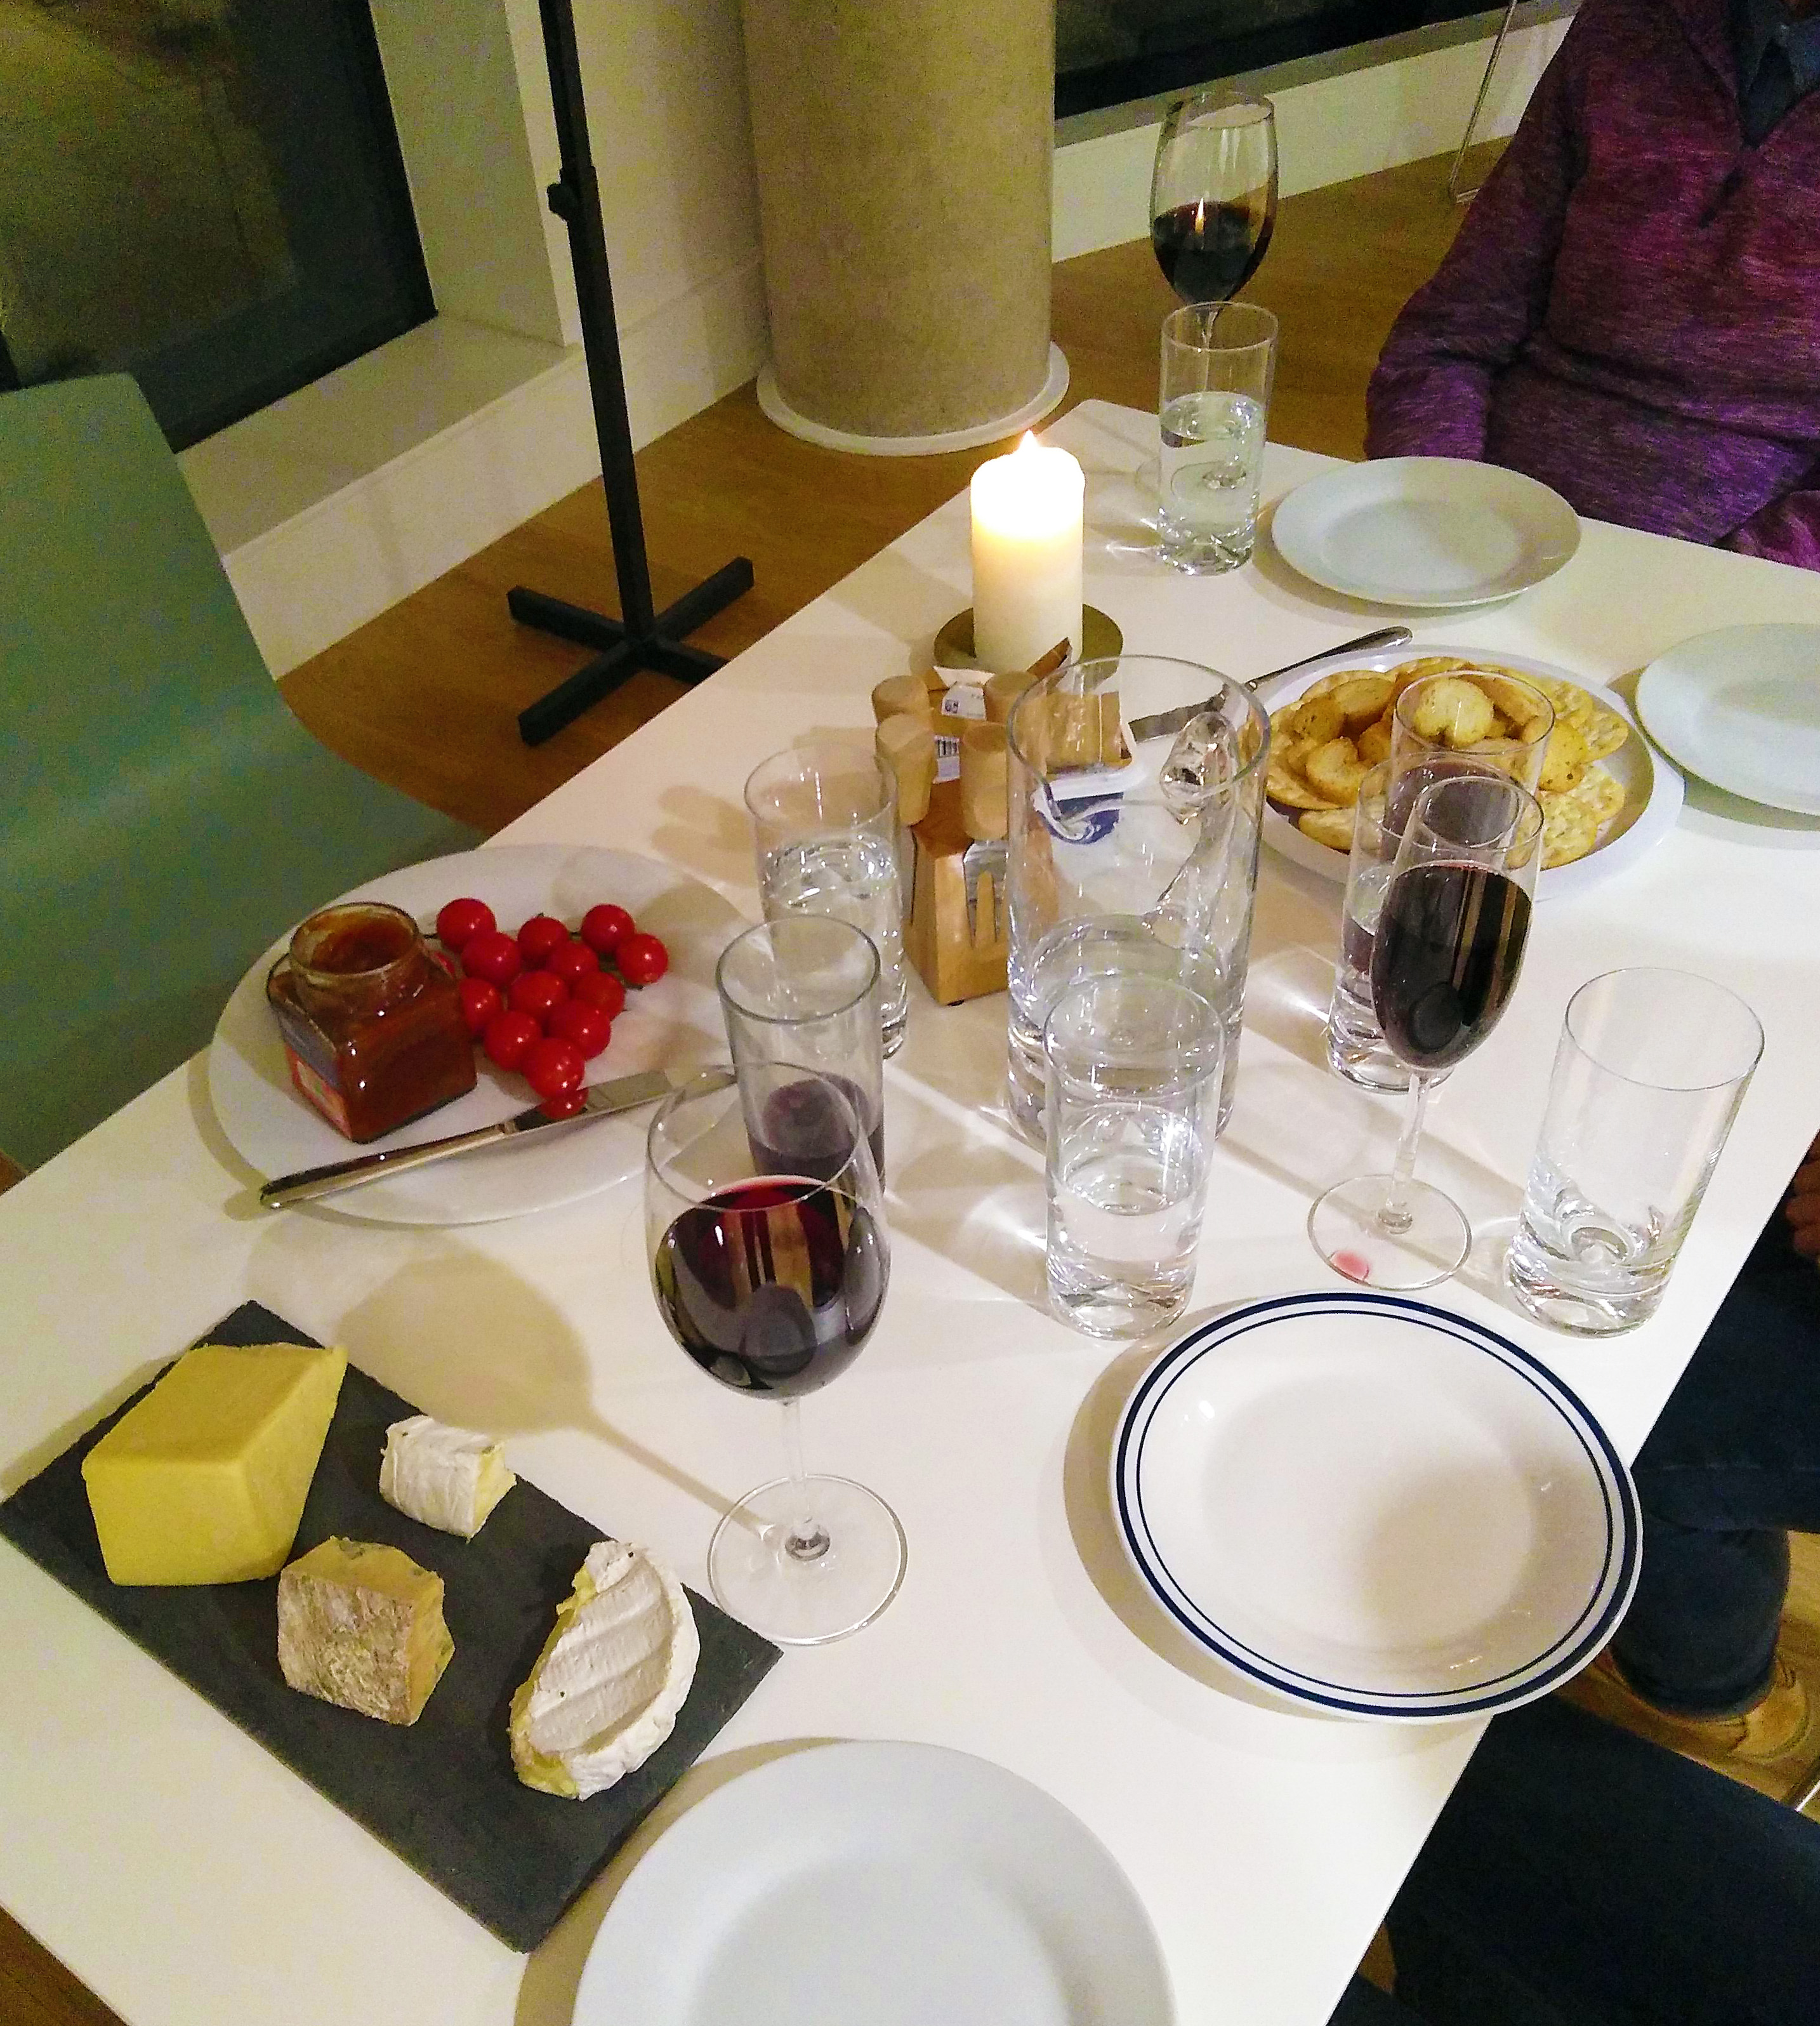 Table set with cheese and wine